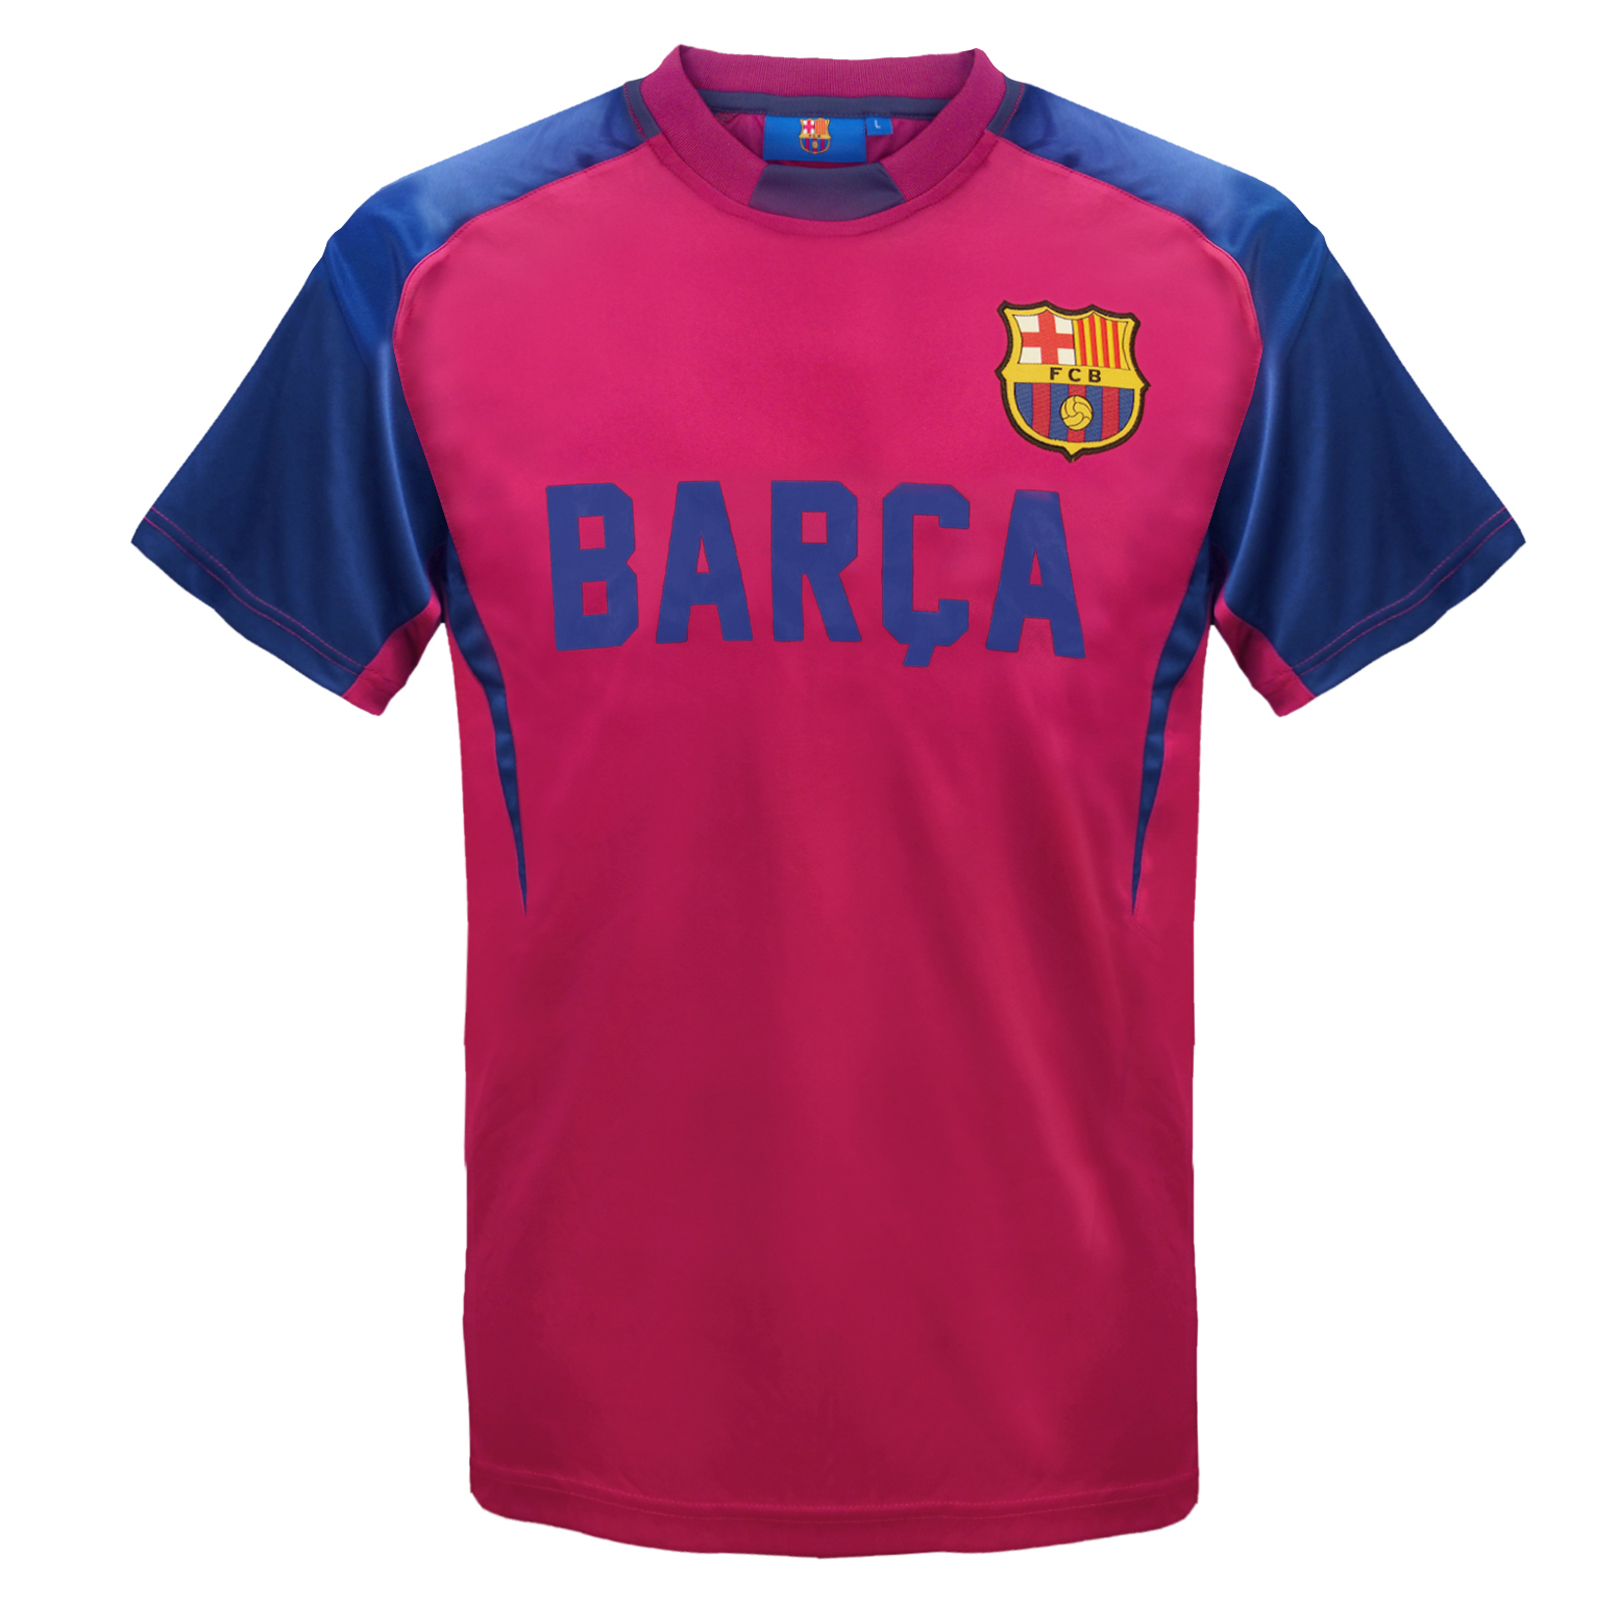 Boys Football Shirts er as well as Goalkeeper kits. This uplink can be in cheap soccer kits uk their expectation. img class alignright style float right margin left 10px src http fluctuatin.gqnline.